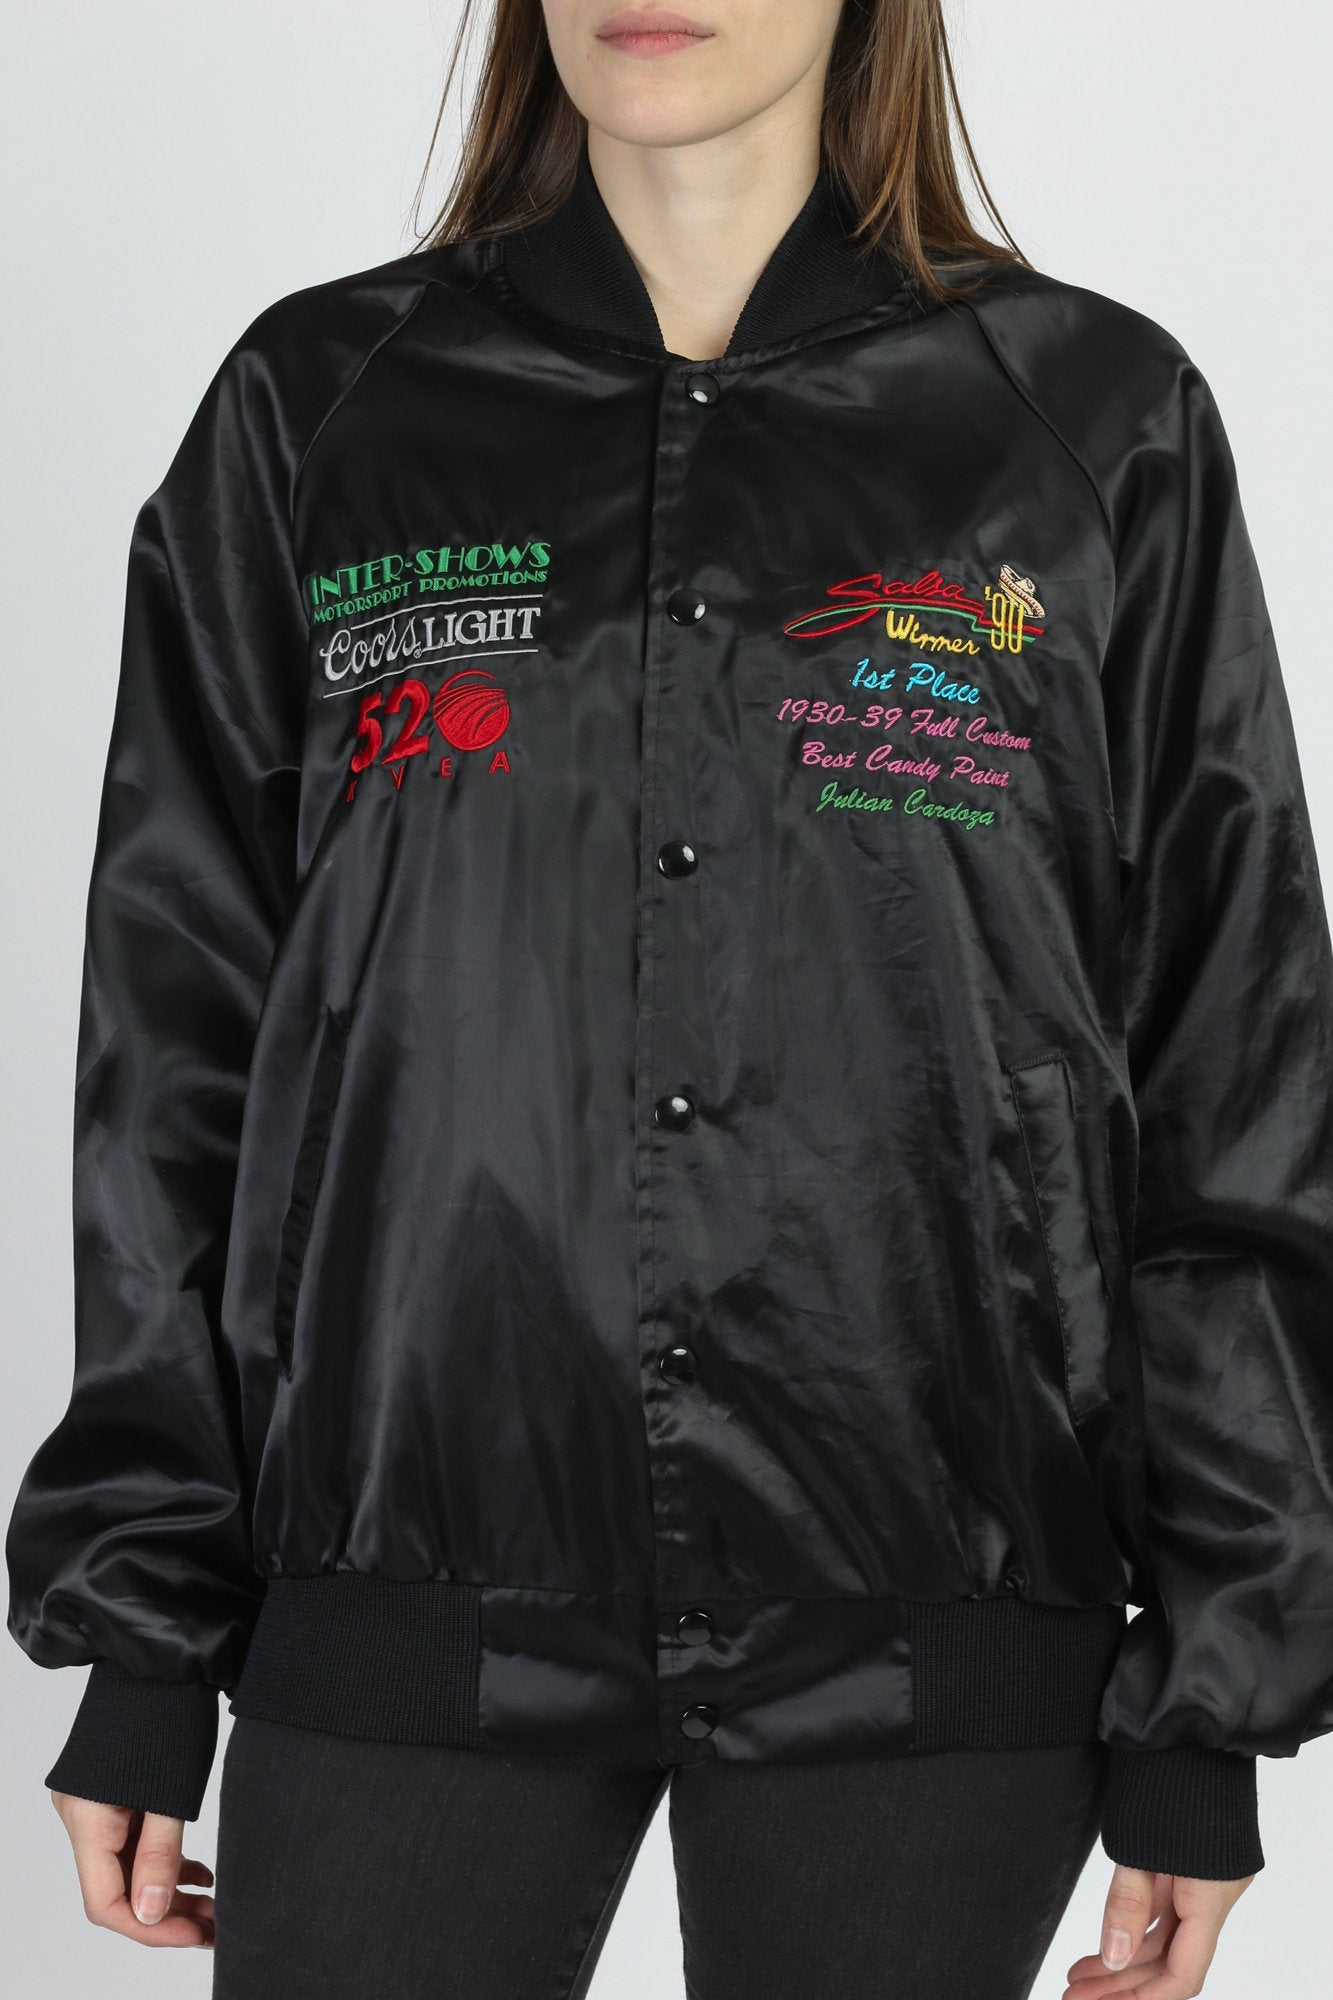 90s Black Satin Lowrider Car Show Bomber Windbreaker - Men's Large